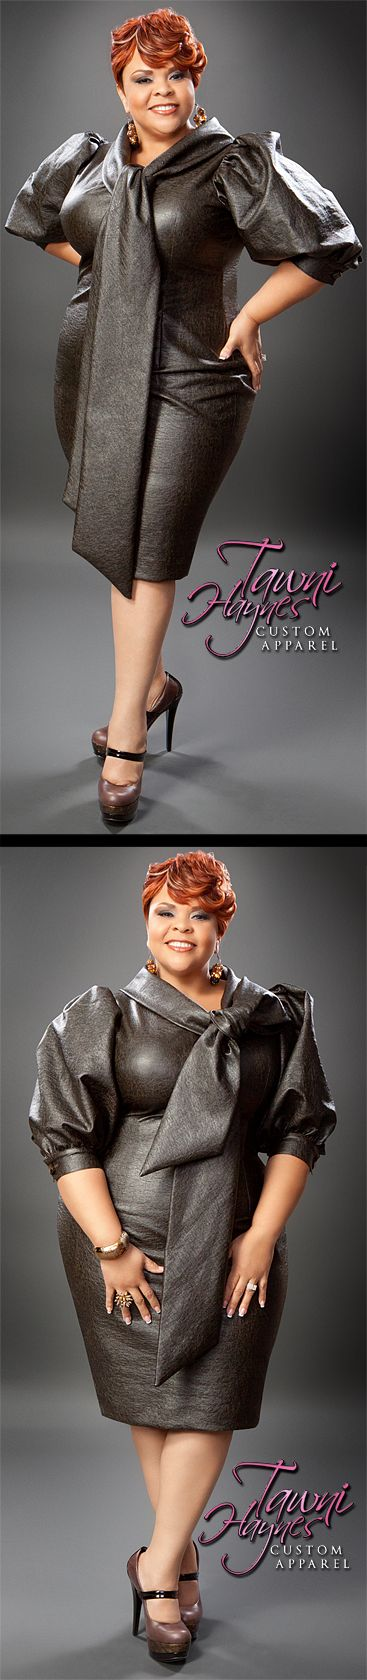 Actress & Recording Artist Tamela Mann in a Tawni Haynes Leather Bow Pencil Dress and Tawni Haynes Edition OMG Custom Accessories